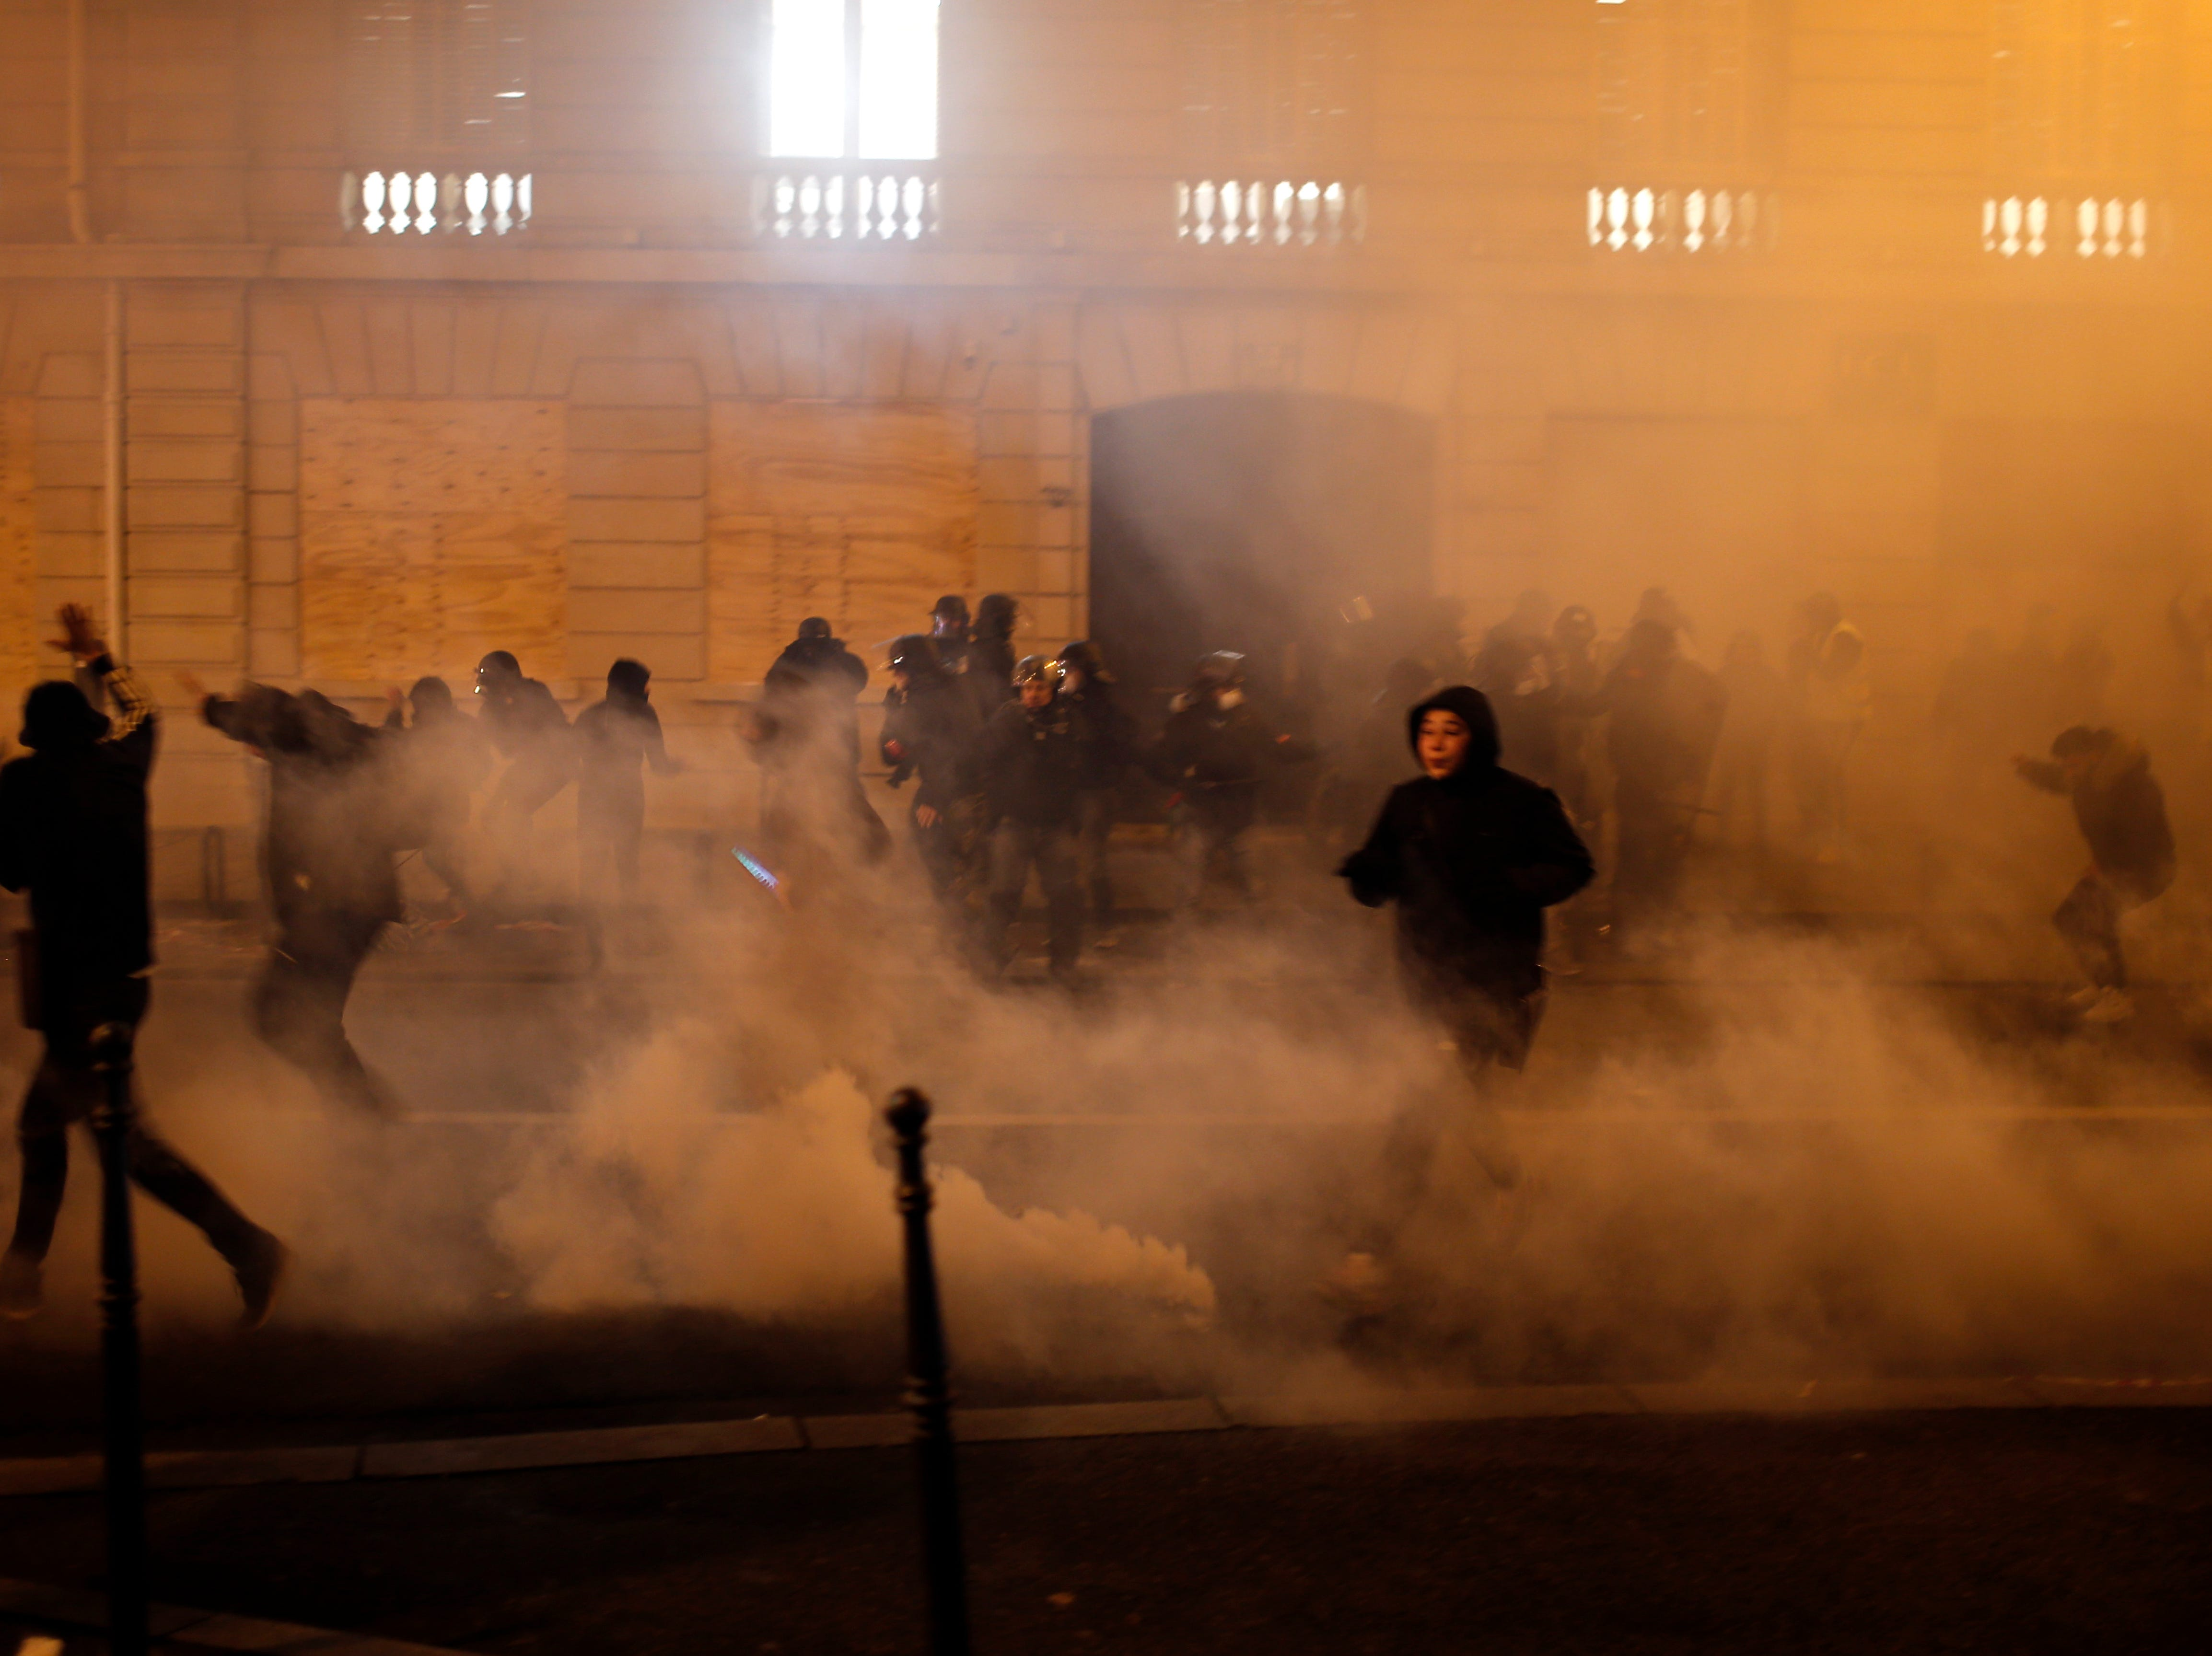 Demonstrators run away to avoid tear gas during clashes Saturday, Dec. 8, 2018, in Paris. Crowds of yellow-vested protesters angry at President Emmanuel Macron and France's high taxes tried to converge on the presidential palace Saturday, some scuffling with police firing tear gas, amid exceptional security measures aimed at preventing a repeat of last week's rioting.